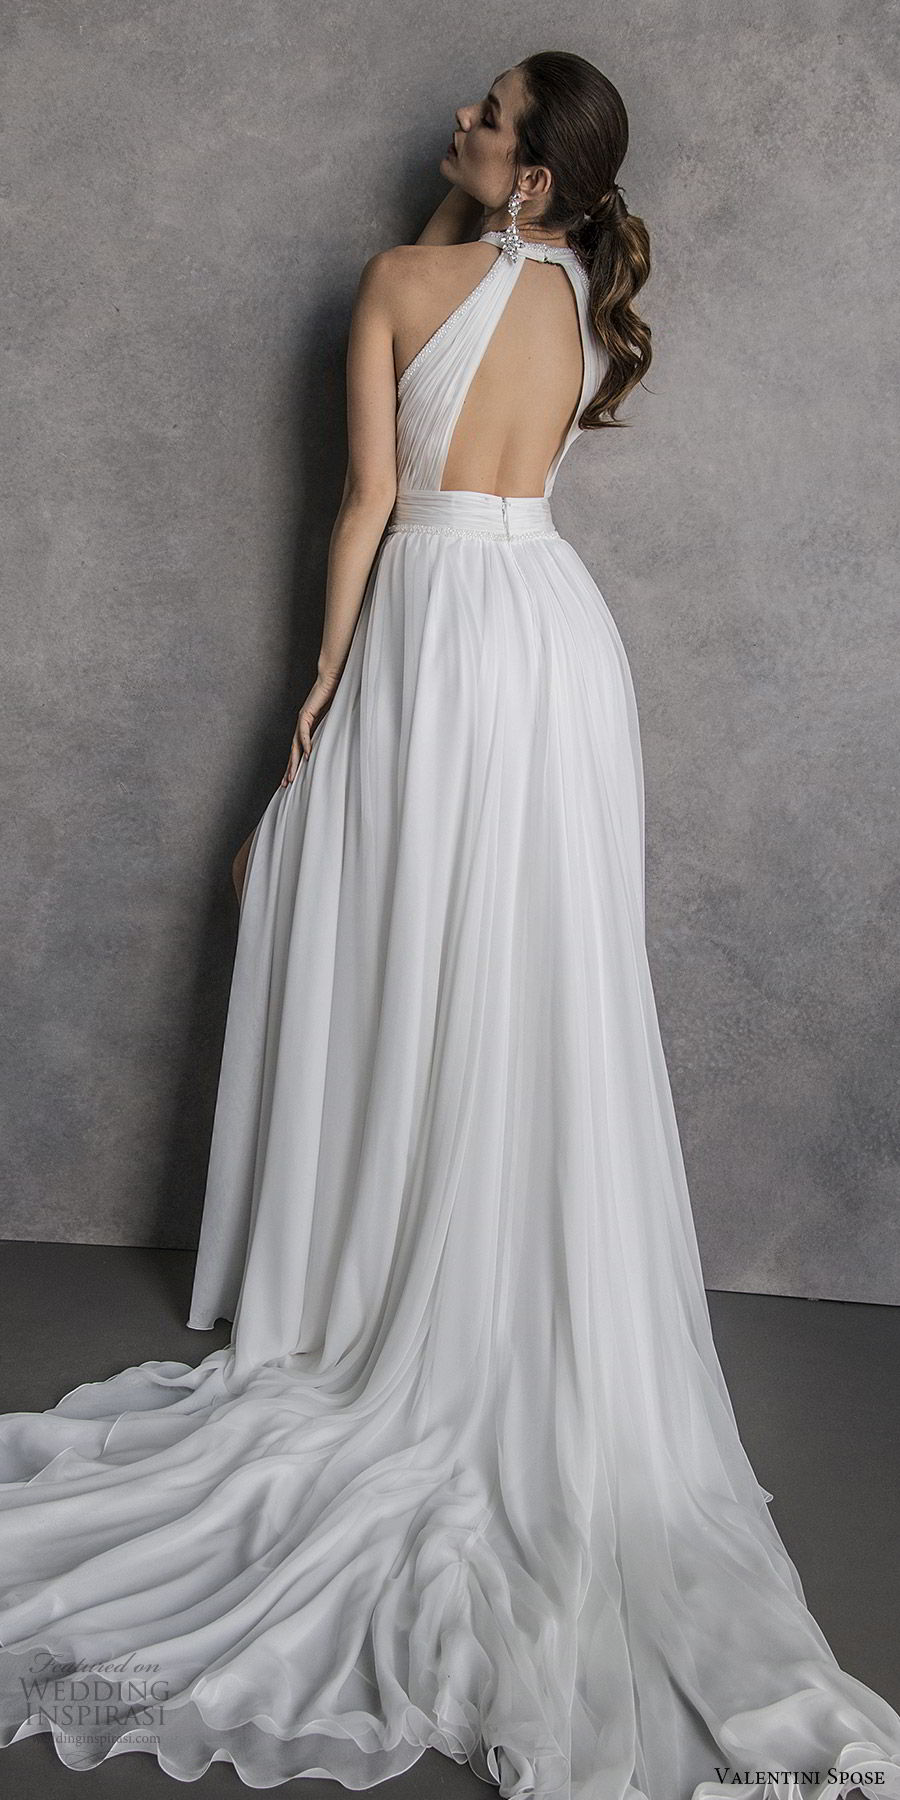 valentini spose spring 2020 bridal sleeveless halter neck cutout ruched bodice double slit skirt soft a line wedding dress (19) bv